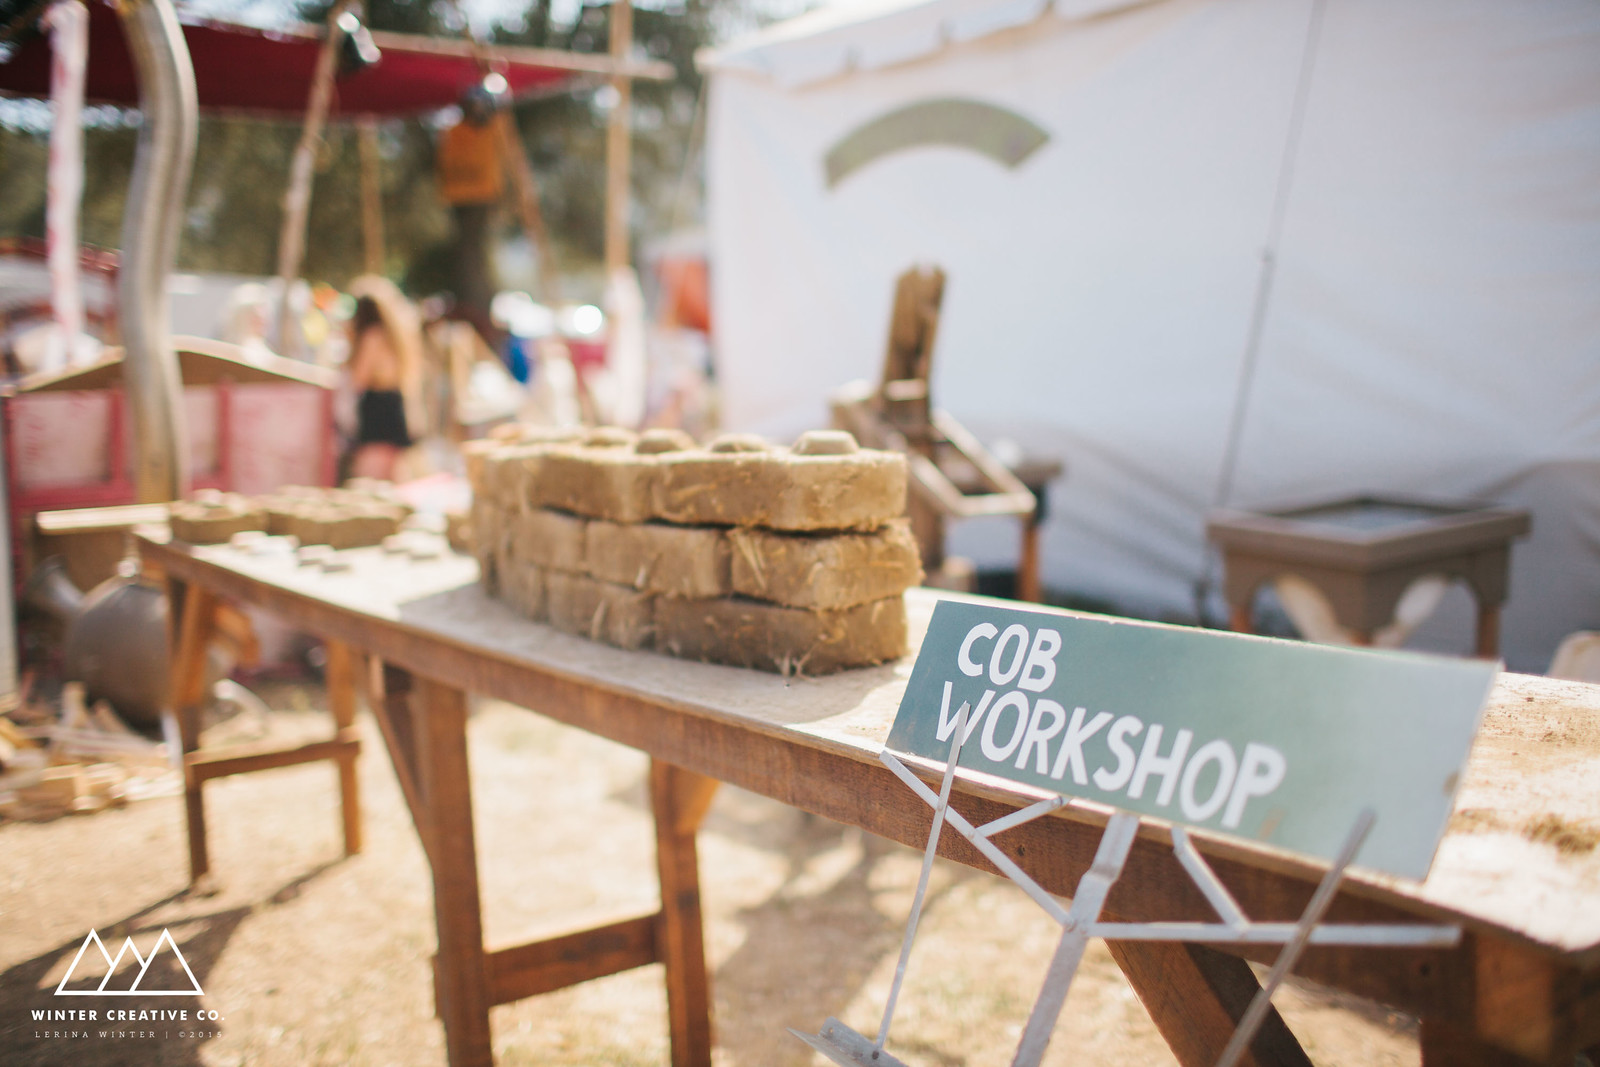 Cob Workshop by WInter Creative Co